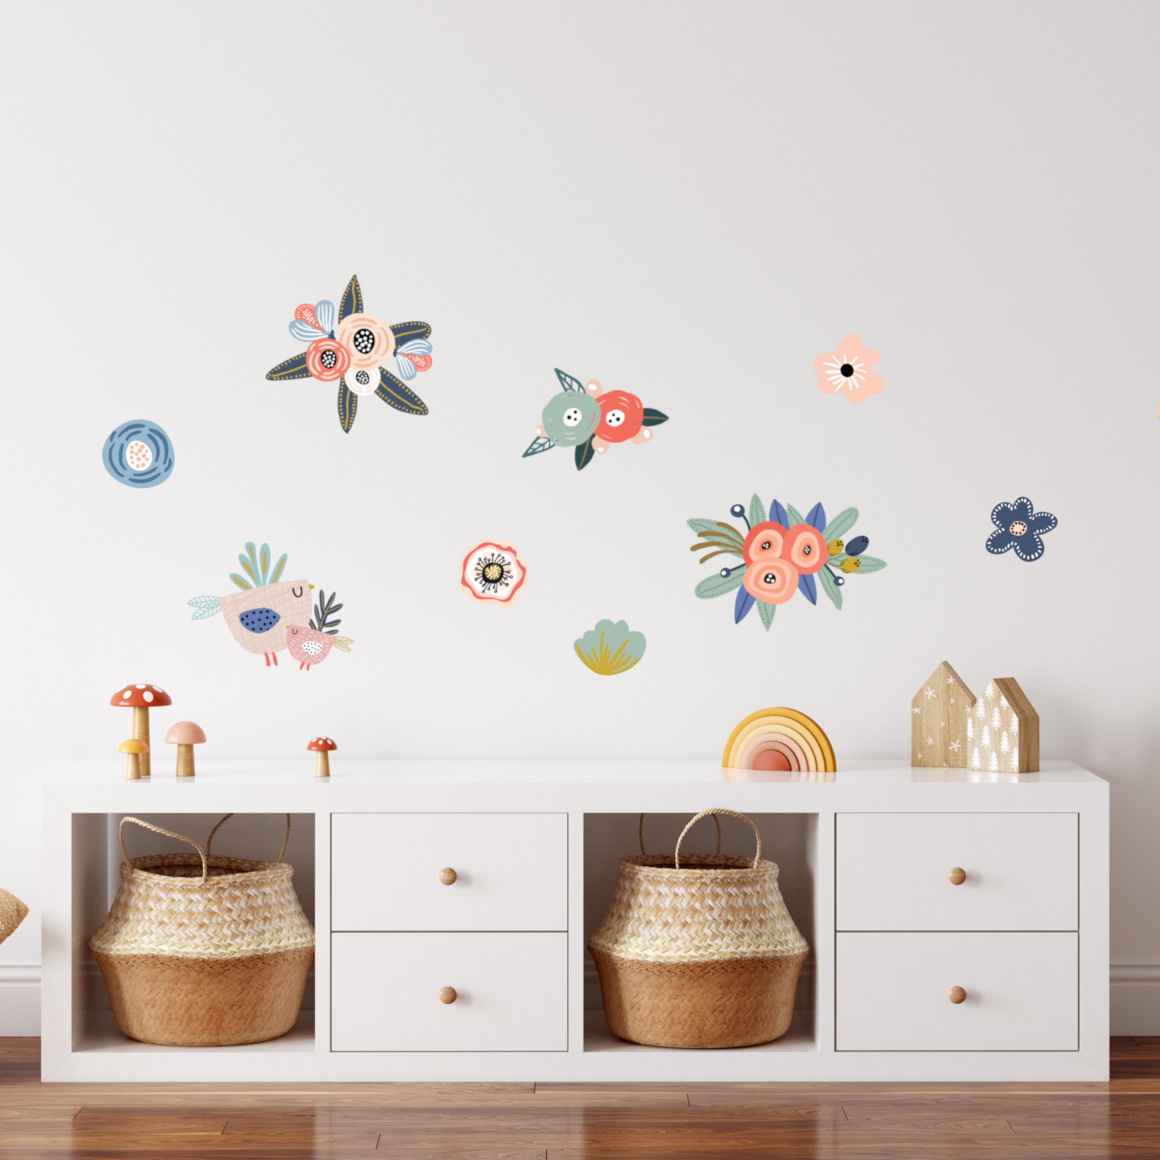 Fabric wall decals - In the garden   Trada Marketplace